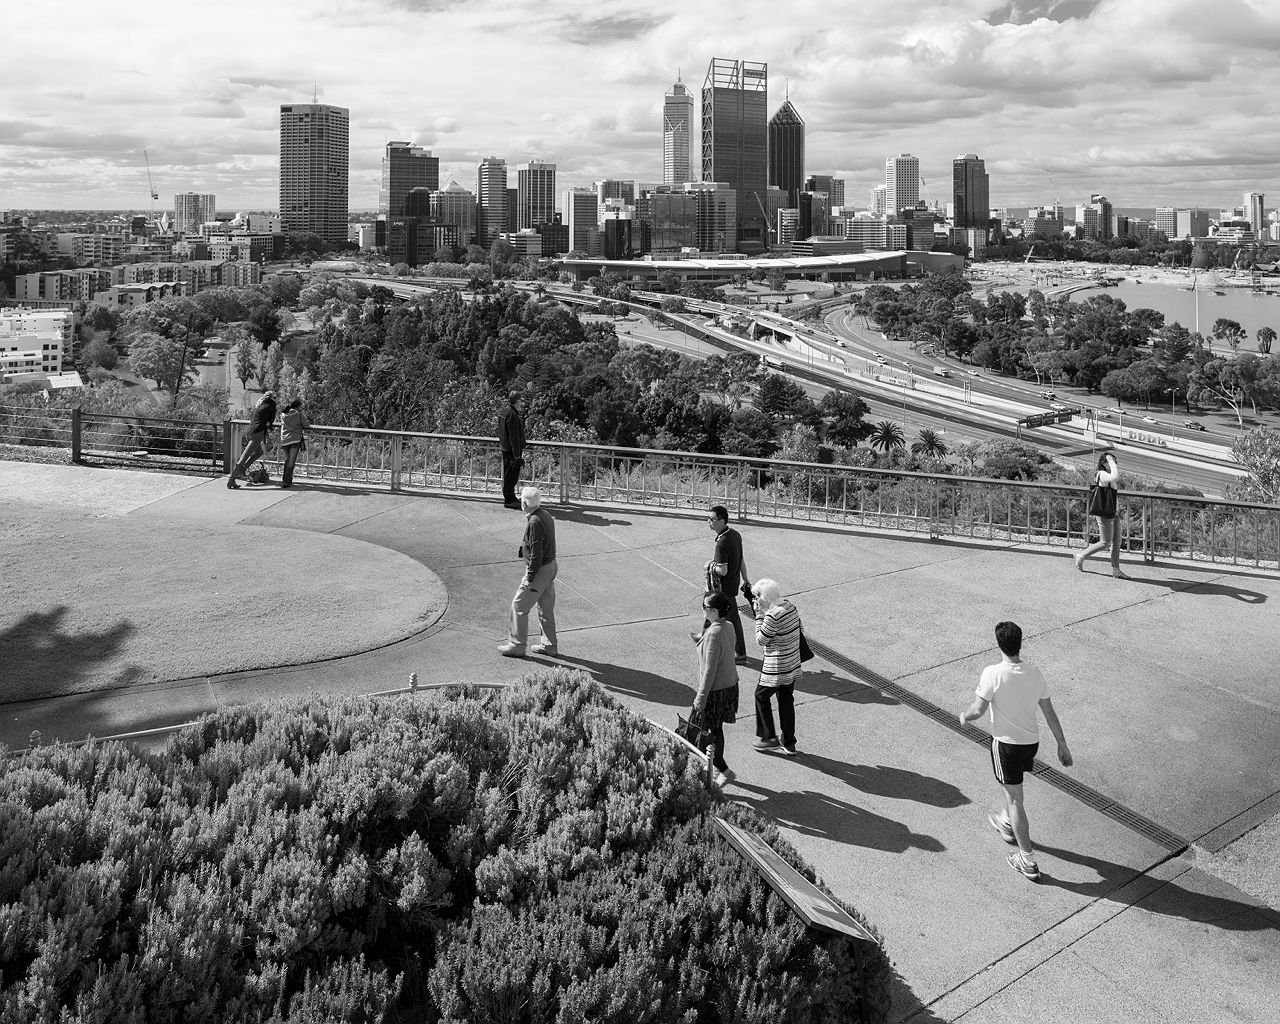 Shapes and shadows of Perth City in black and white